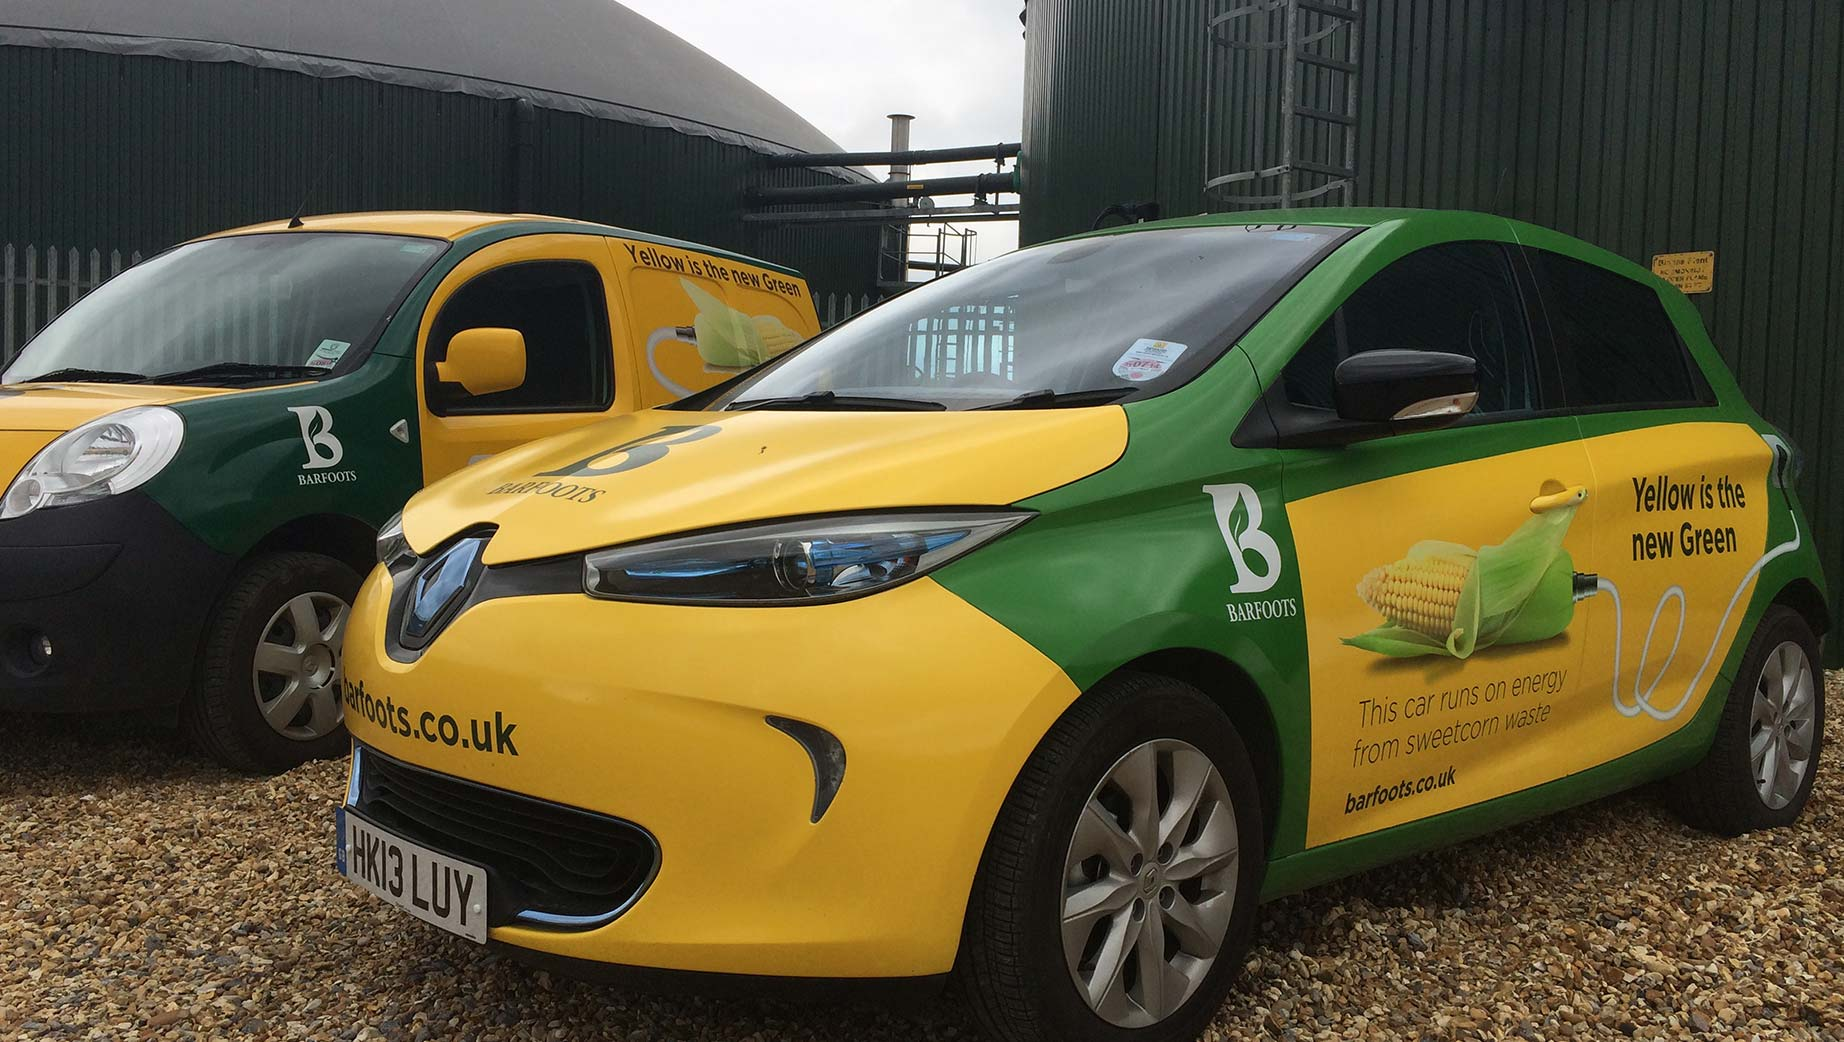 Photograph of two cars that are powered by Barfoots' sweetcorn waste